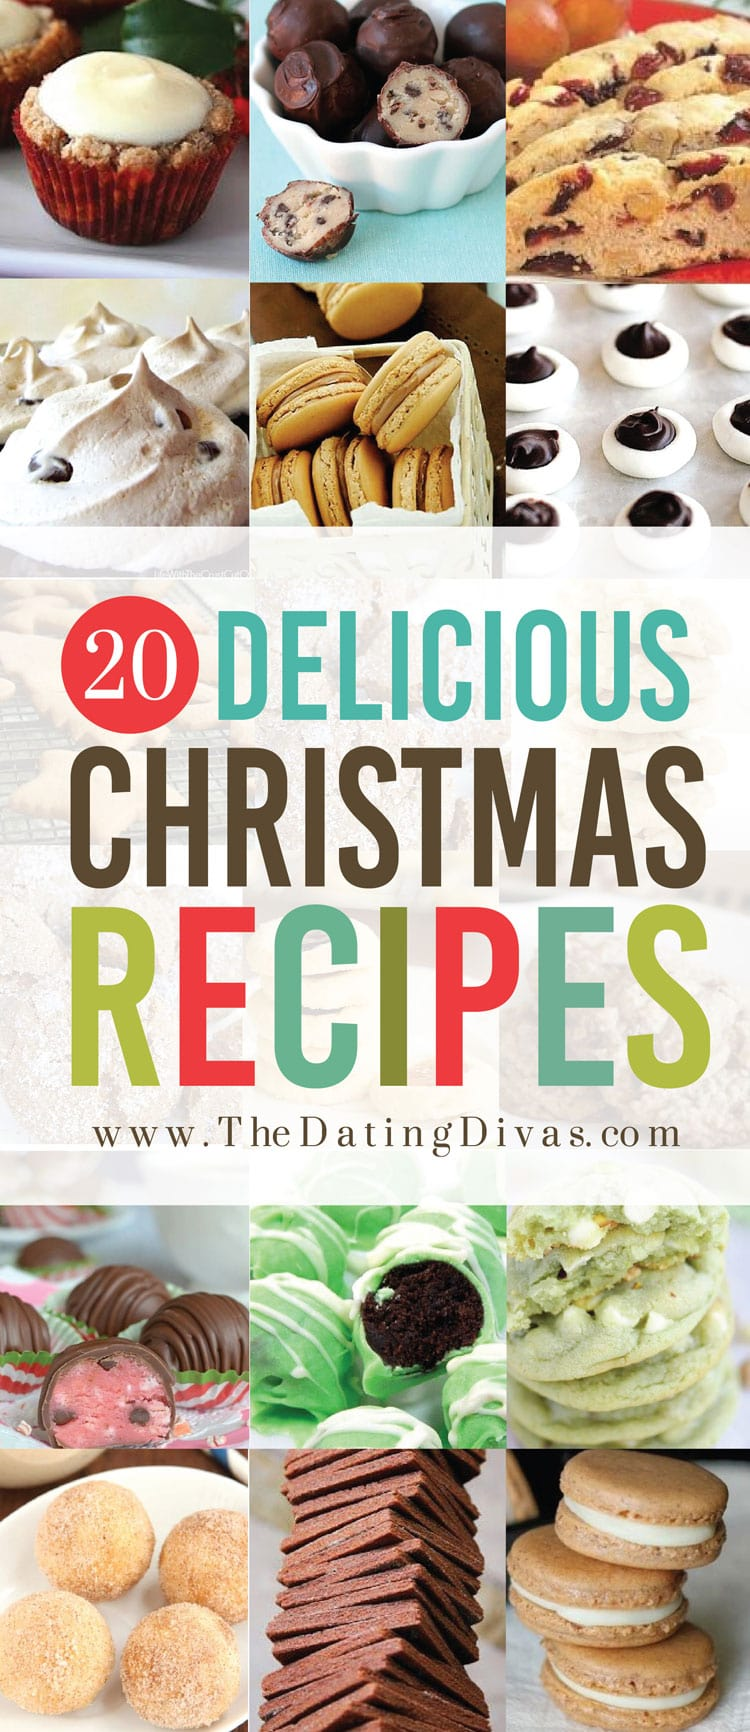 Christmas treat recipes to bring to a cookie exchange party.